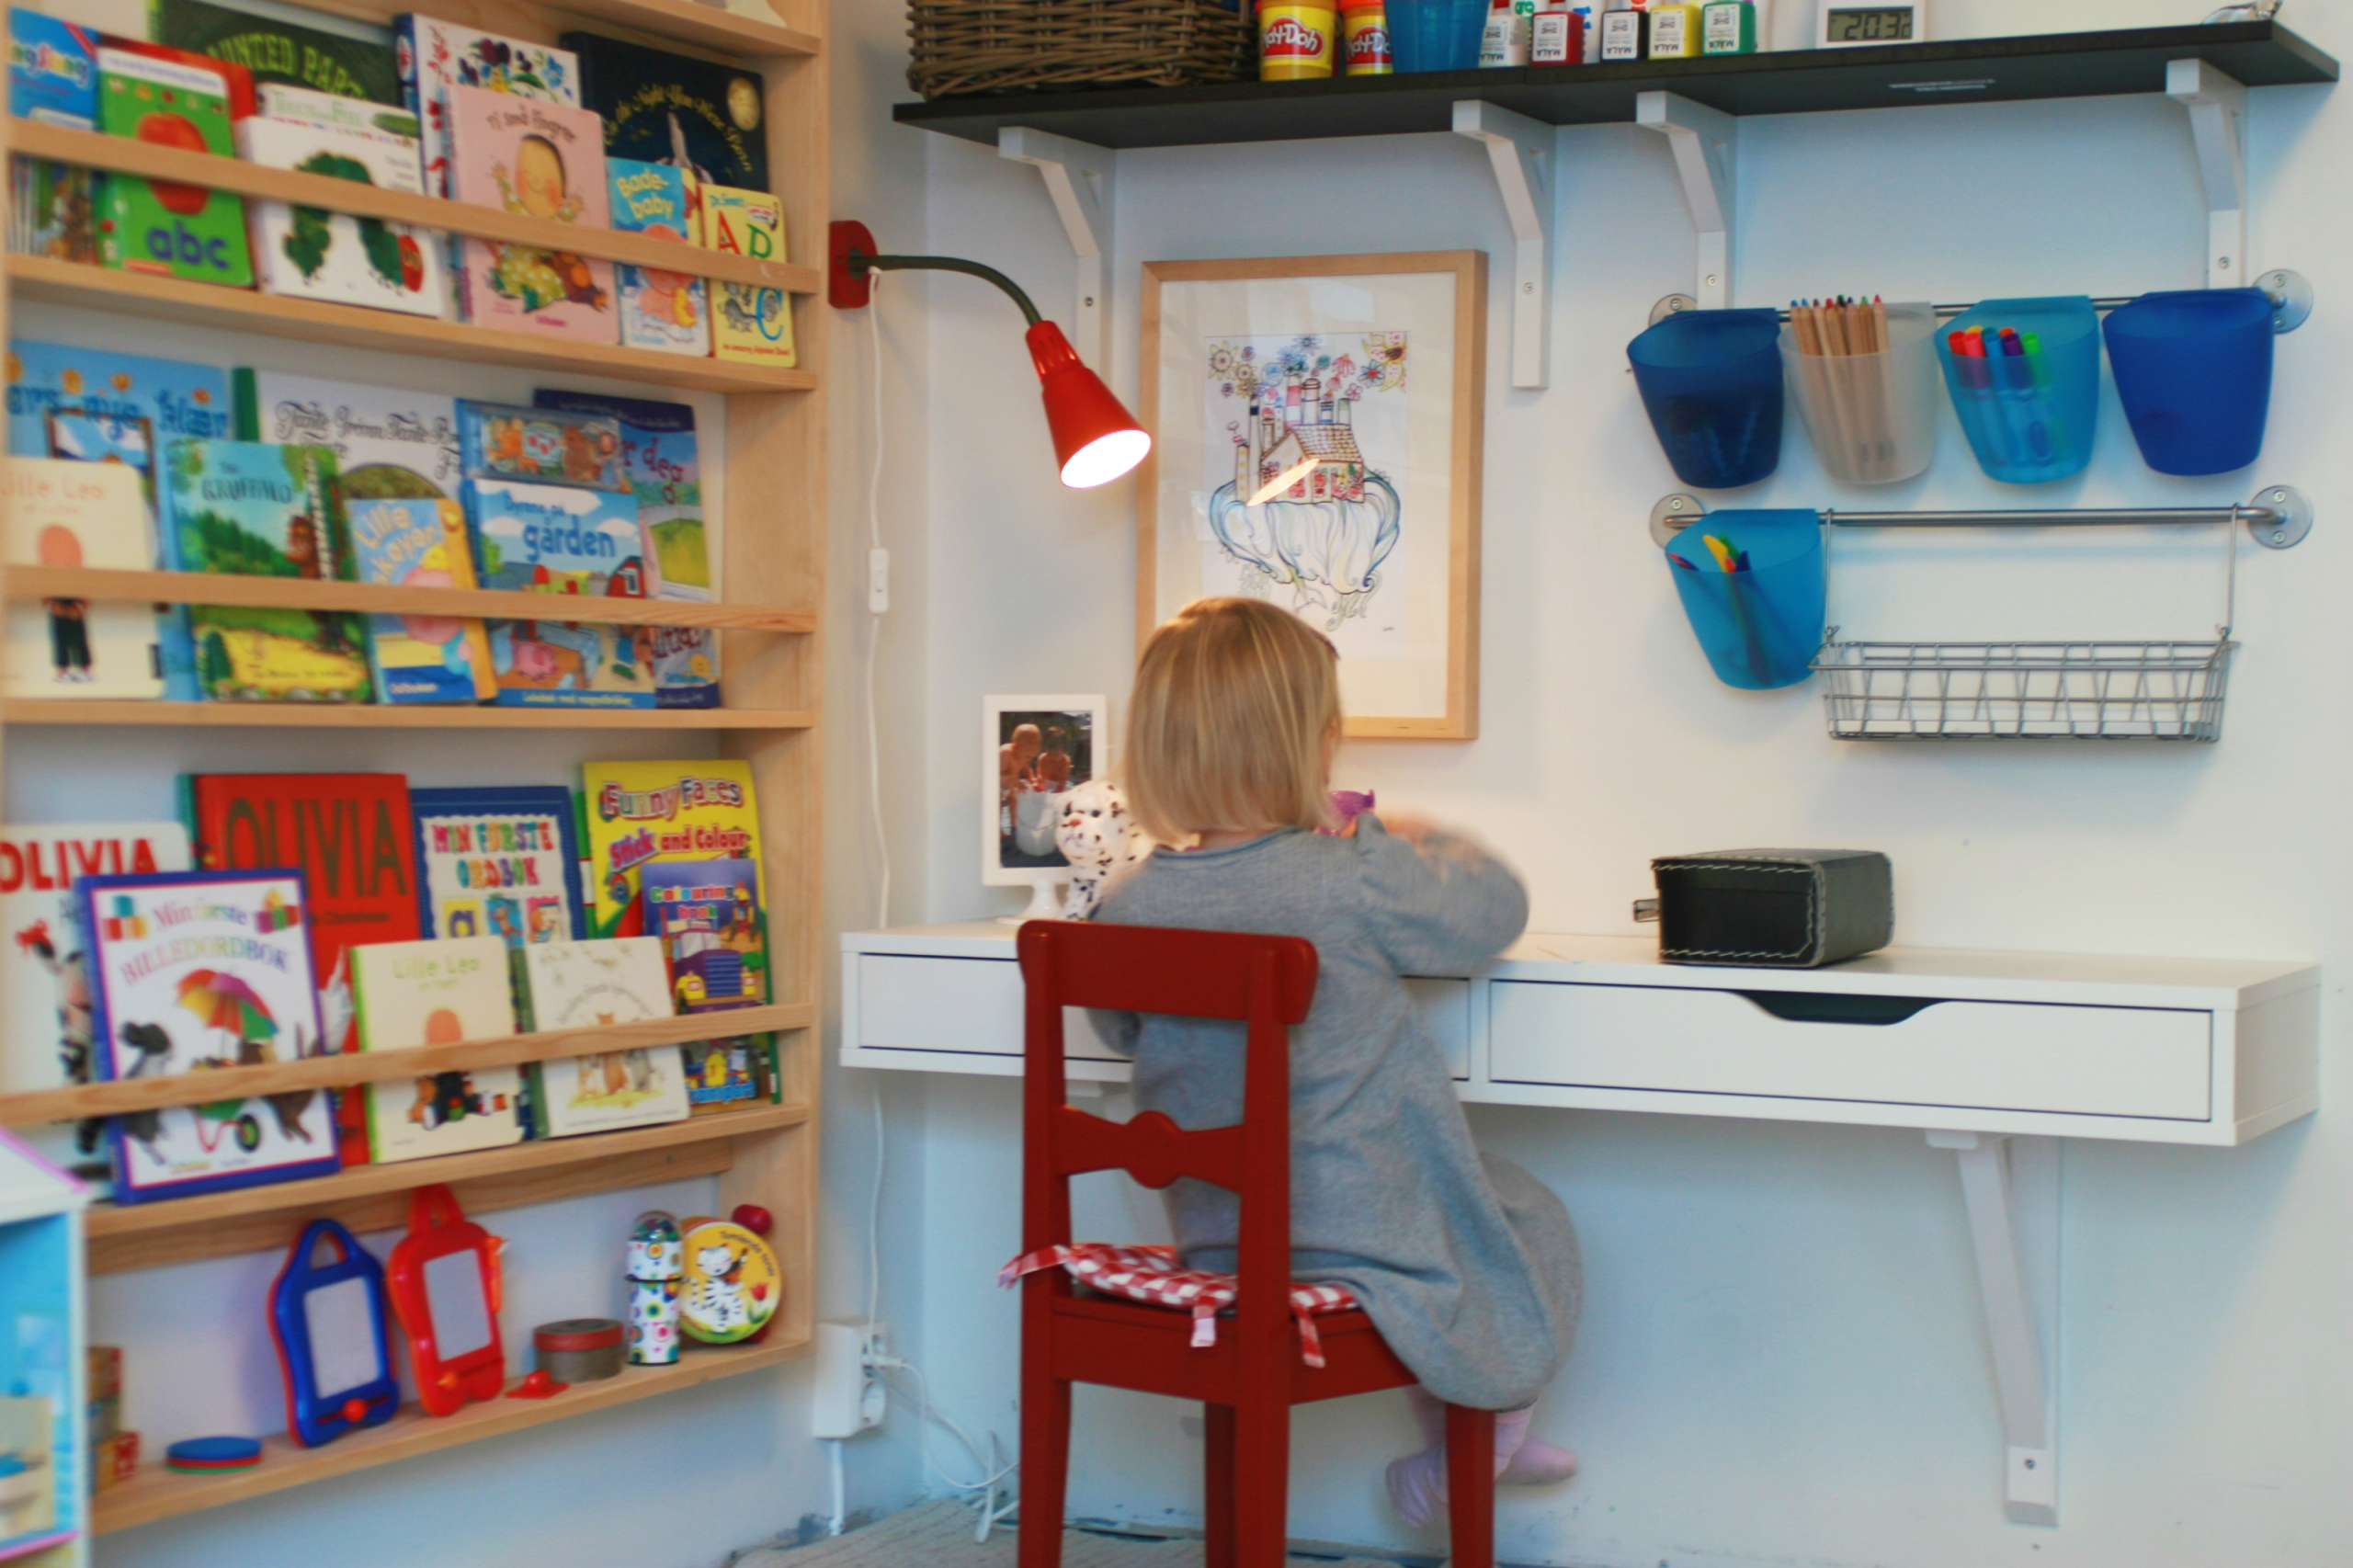 Magazine rack-style bookshelf for kids room